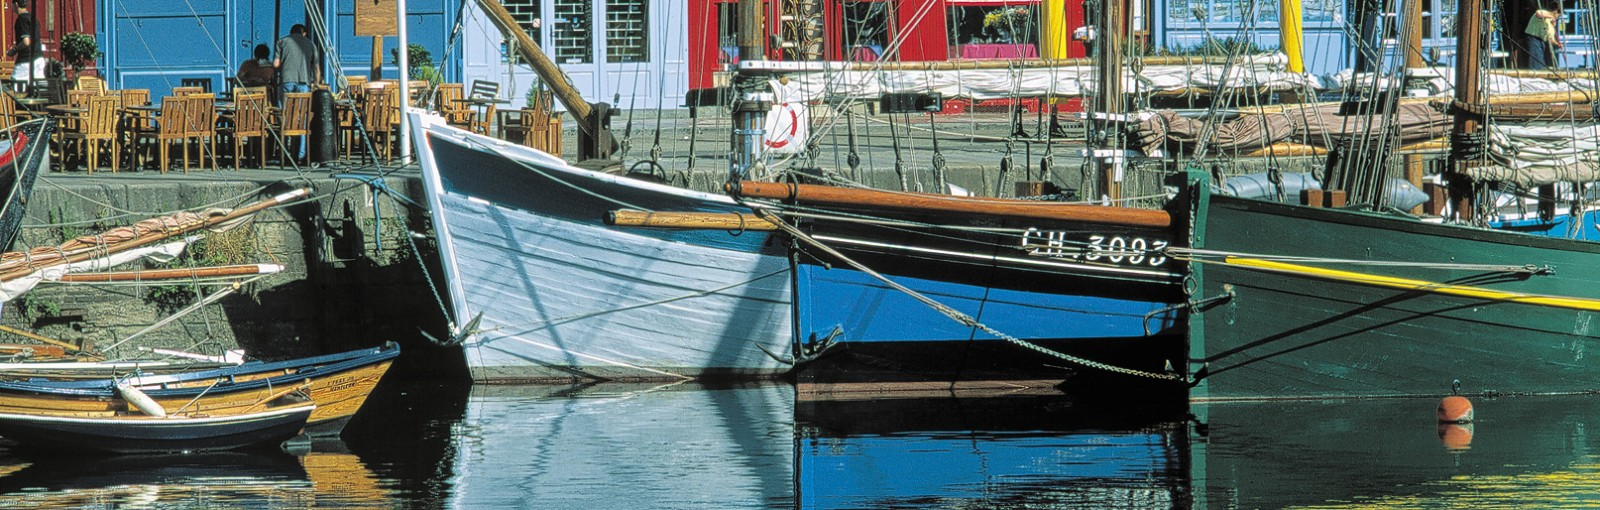 Tours Rouen, Honfleur and Deauville - Full days - Day tours from Paris